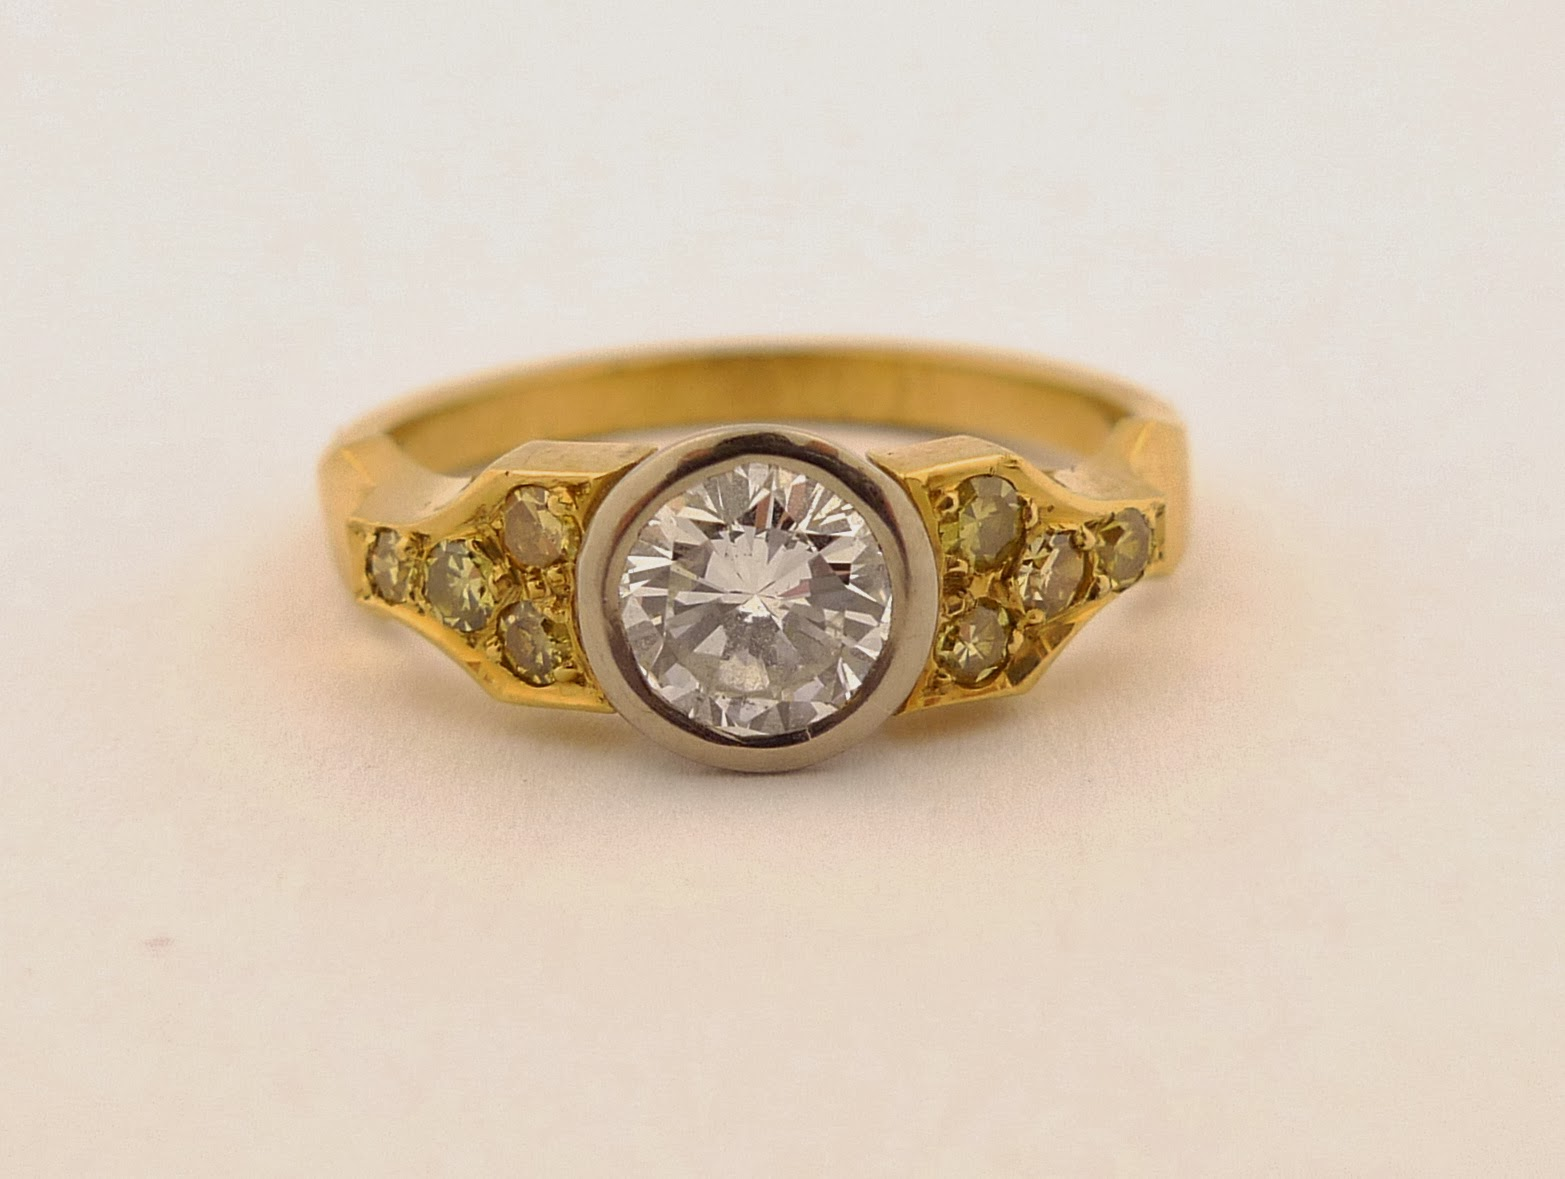 Watch Swap Cafe Two Interesting Vintage Diamond Rings for Sale Toronto Auction